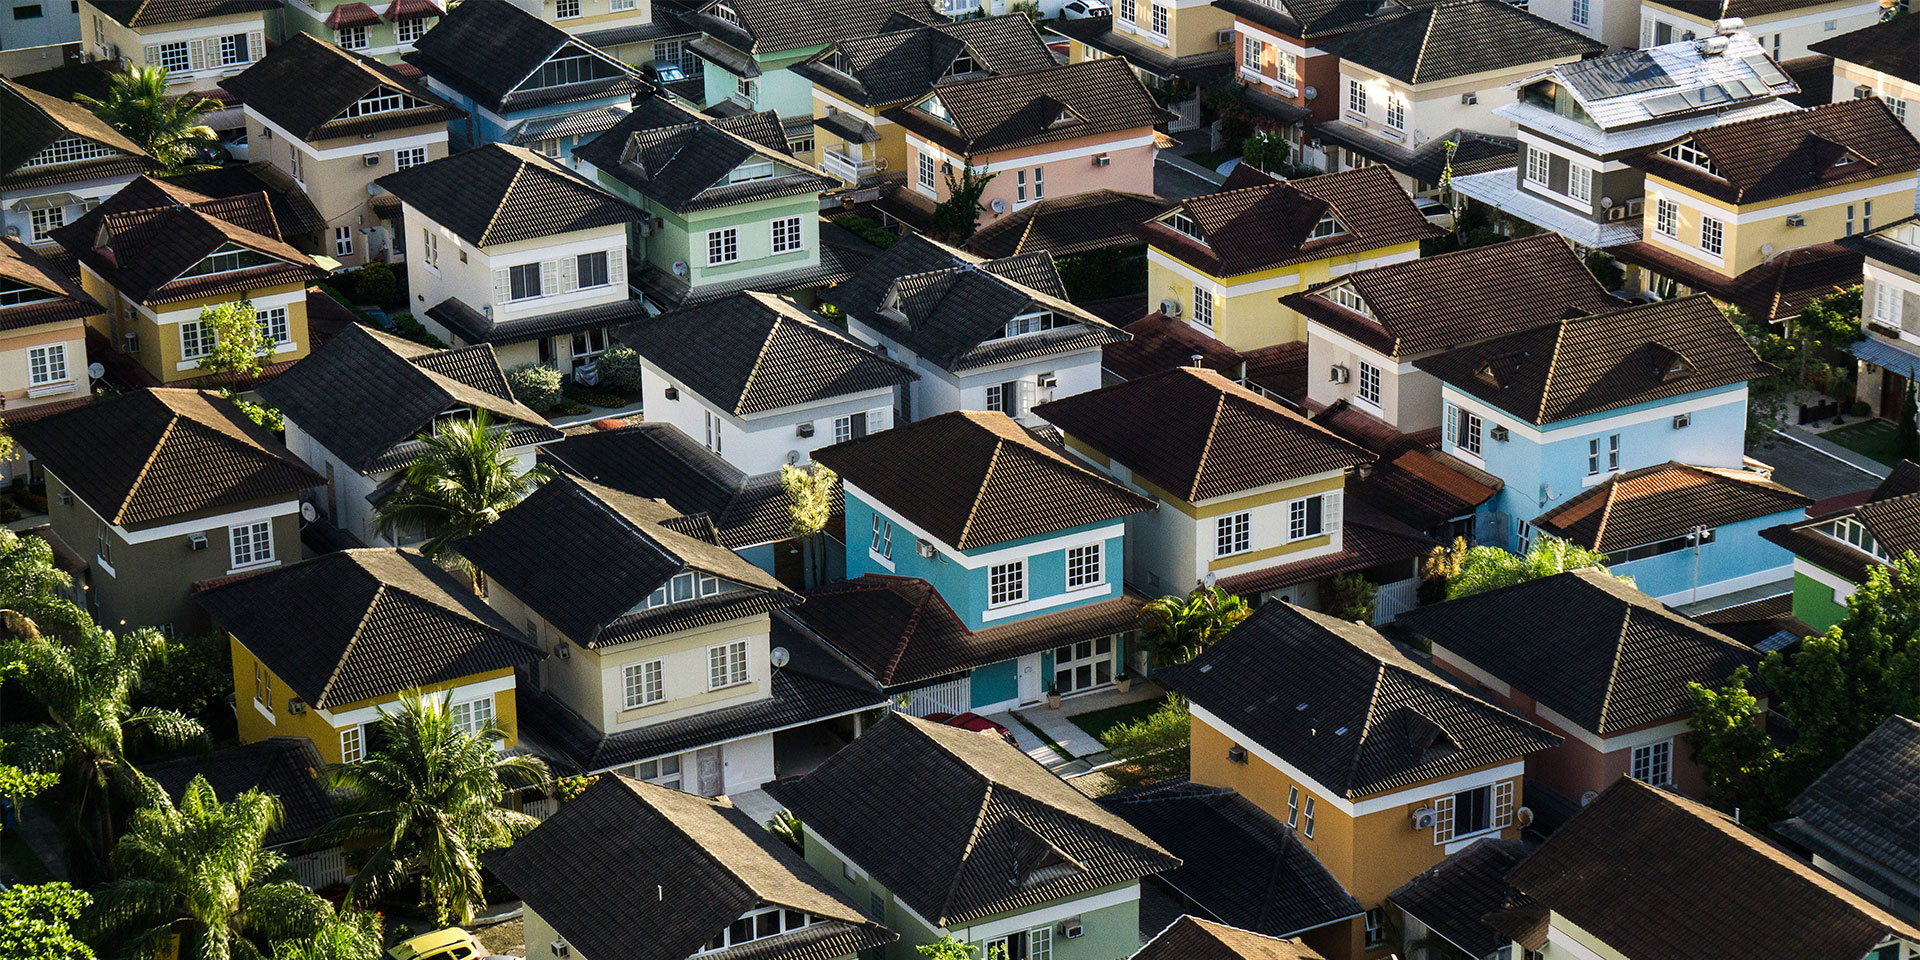 How to target landlords: 4 types of landlords you need to know